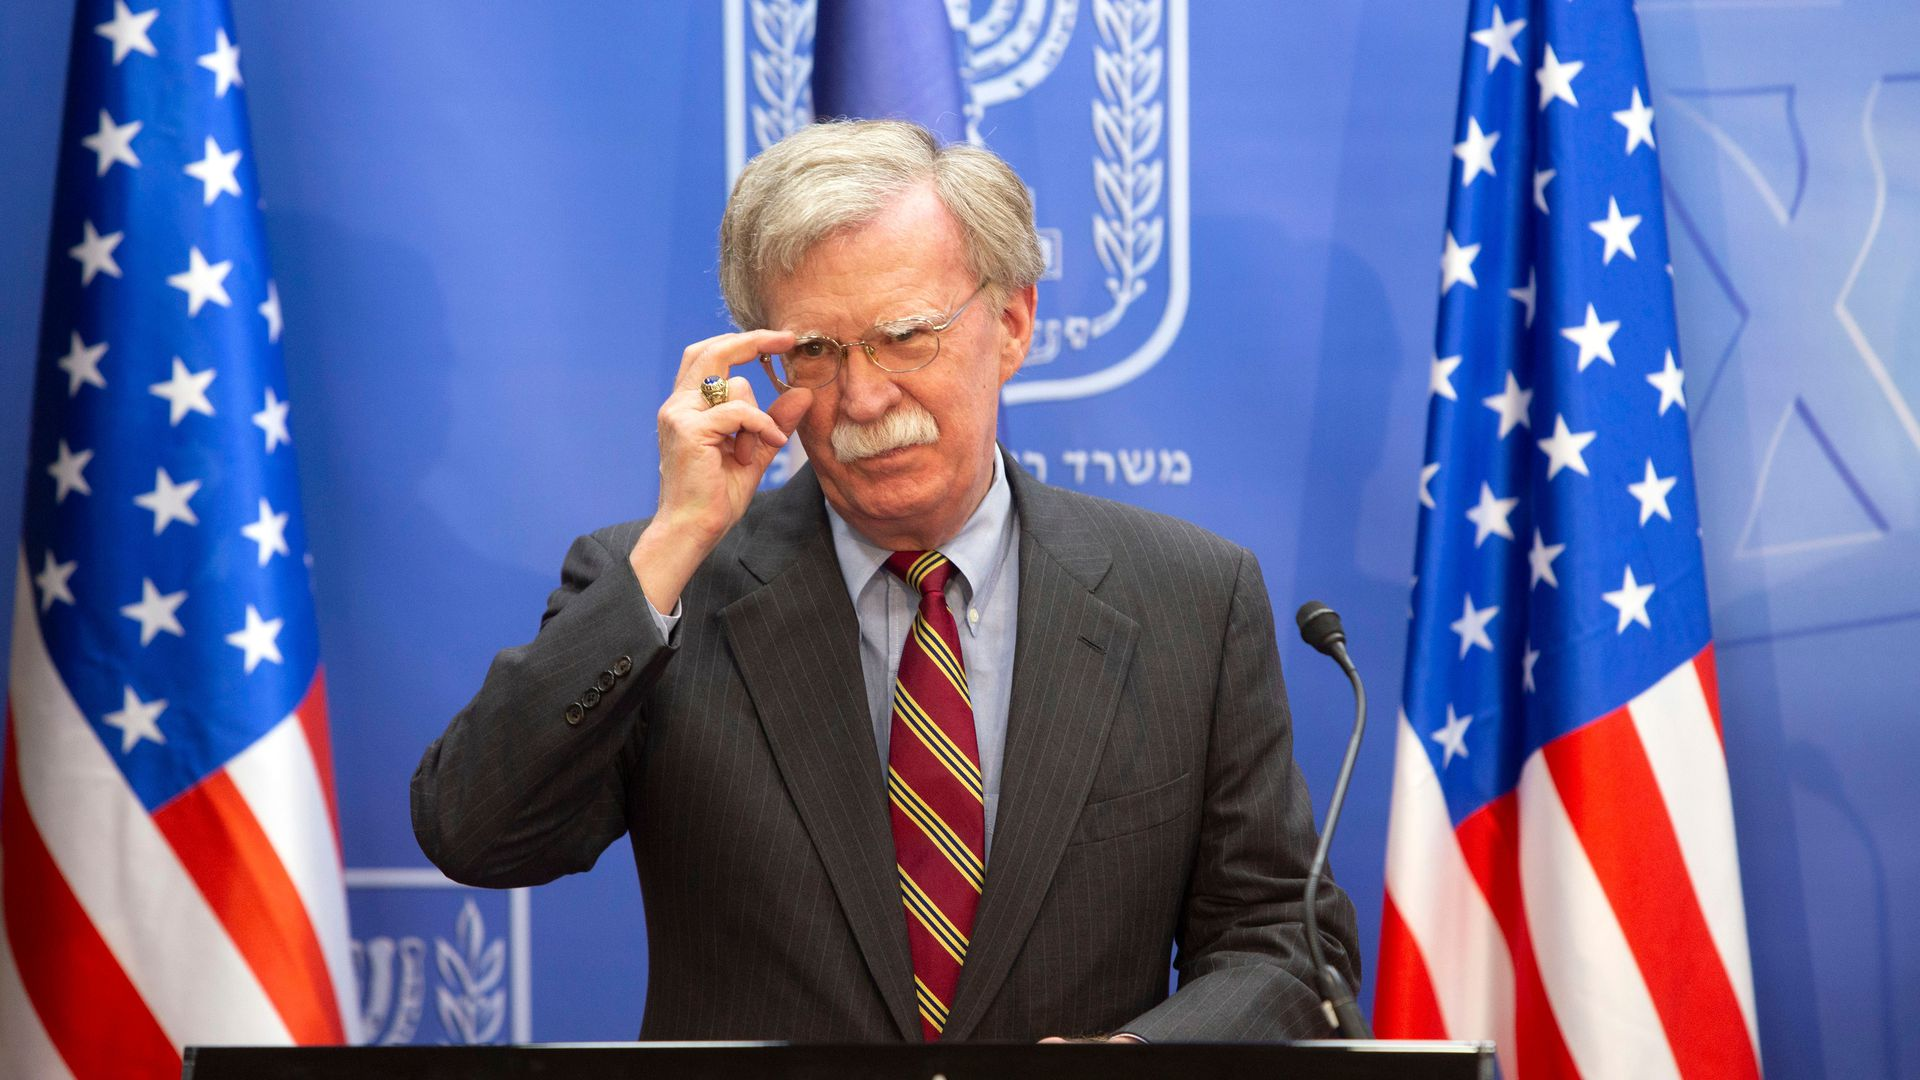 Trump's former national security adviser John Bolton signs $2M book deal